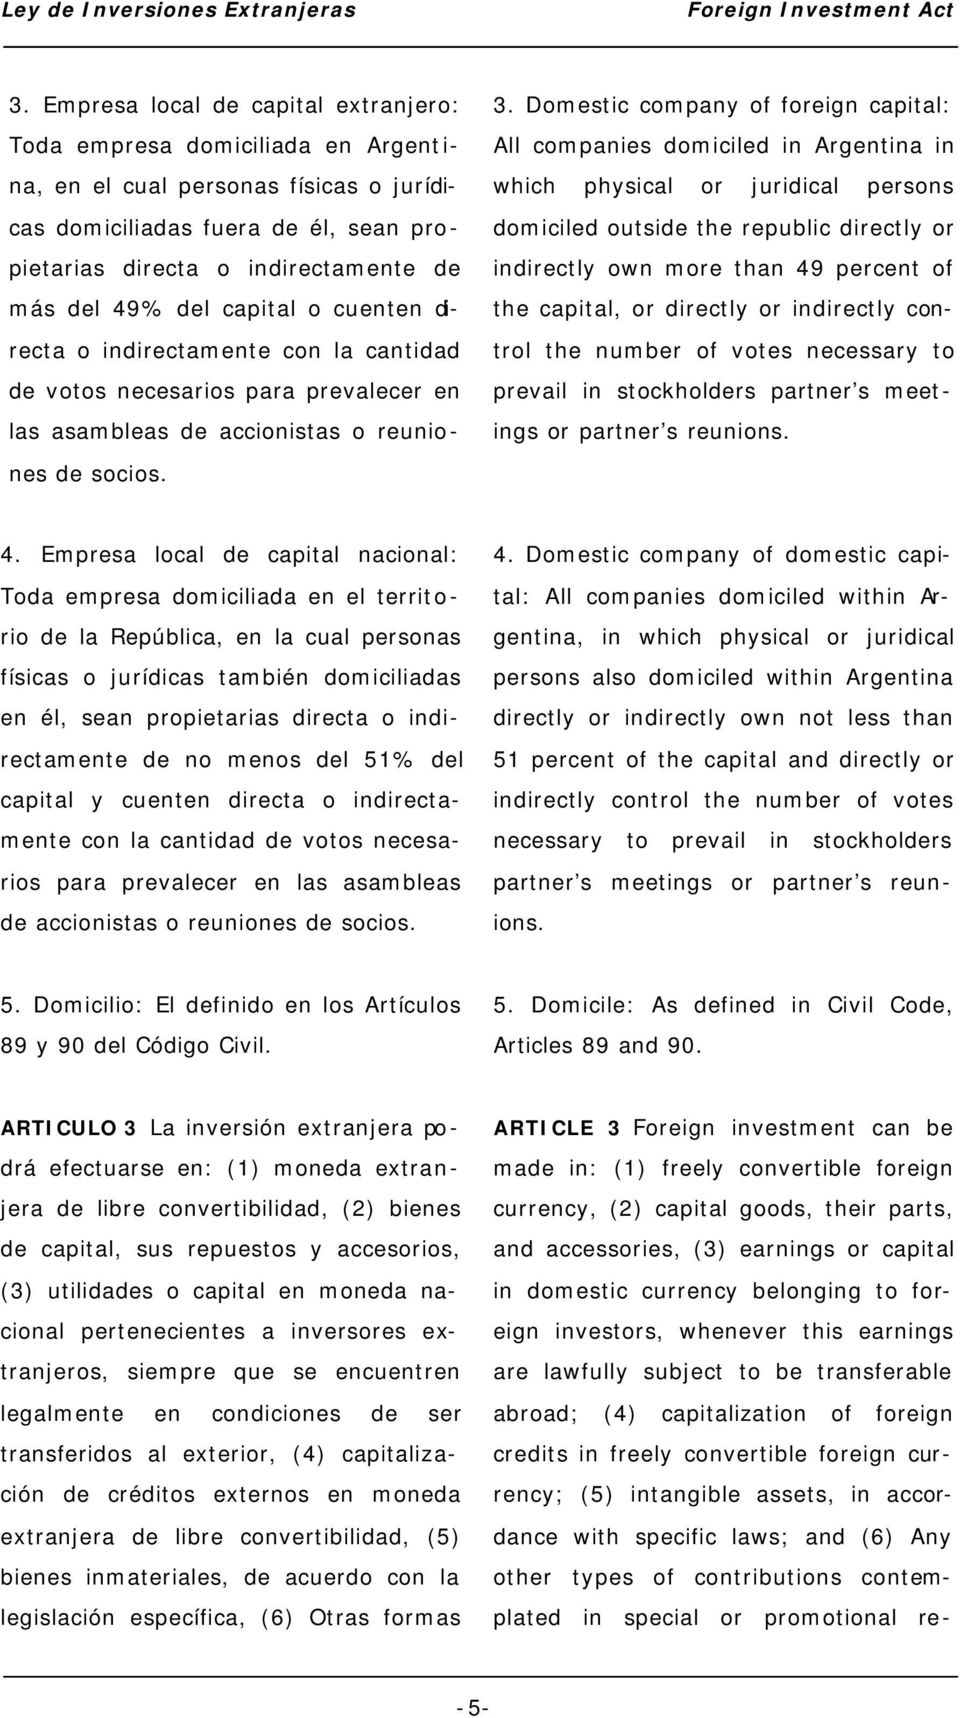 Domestic company of foreign capital: All companies domiciled in Argentina in which physical or juridical persons domiciled outside the republic directly or indirectly own more than 49 percent of the